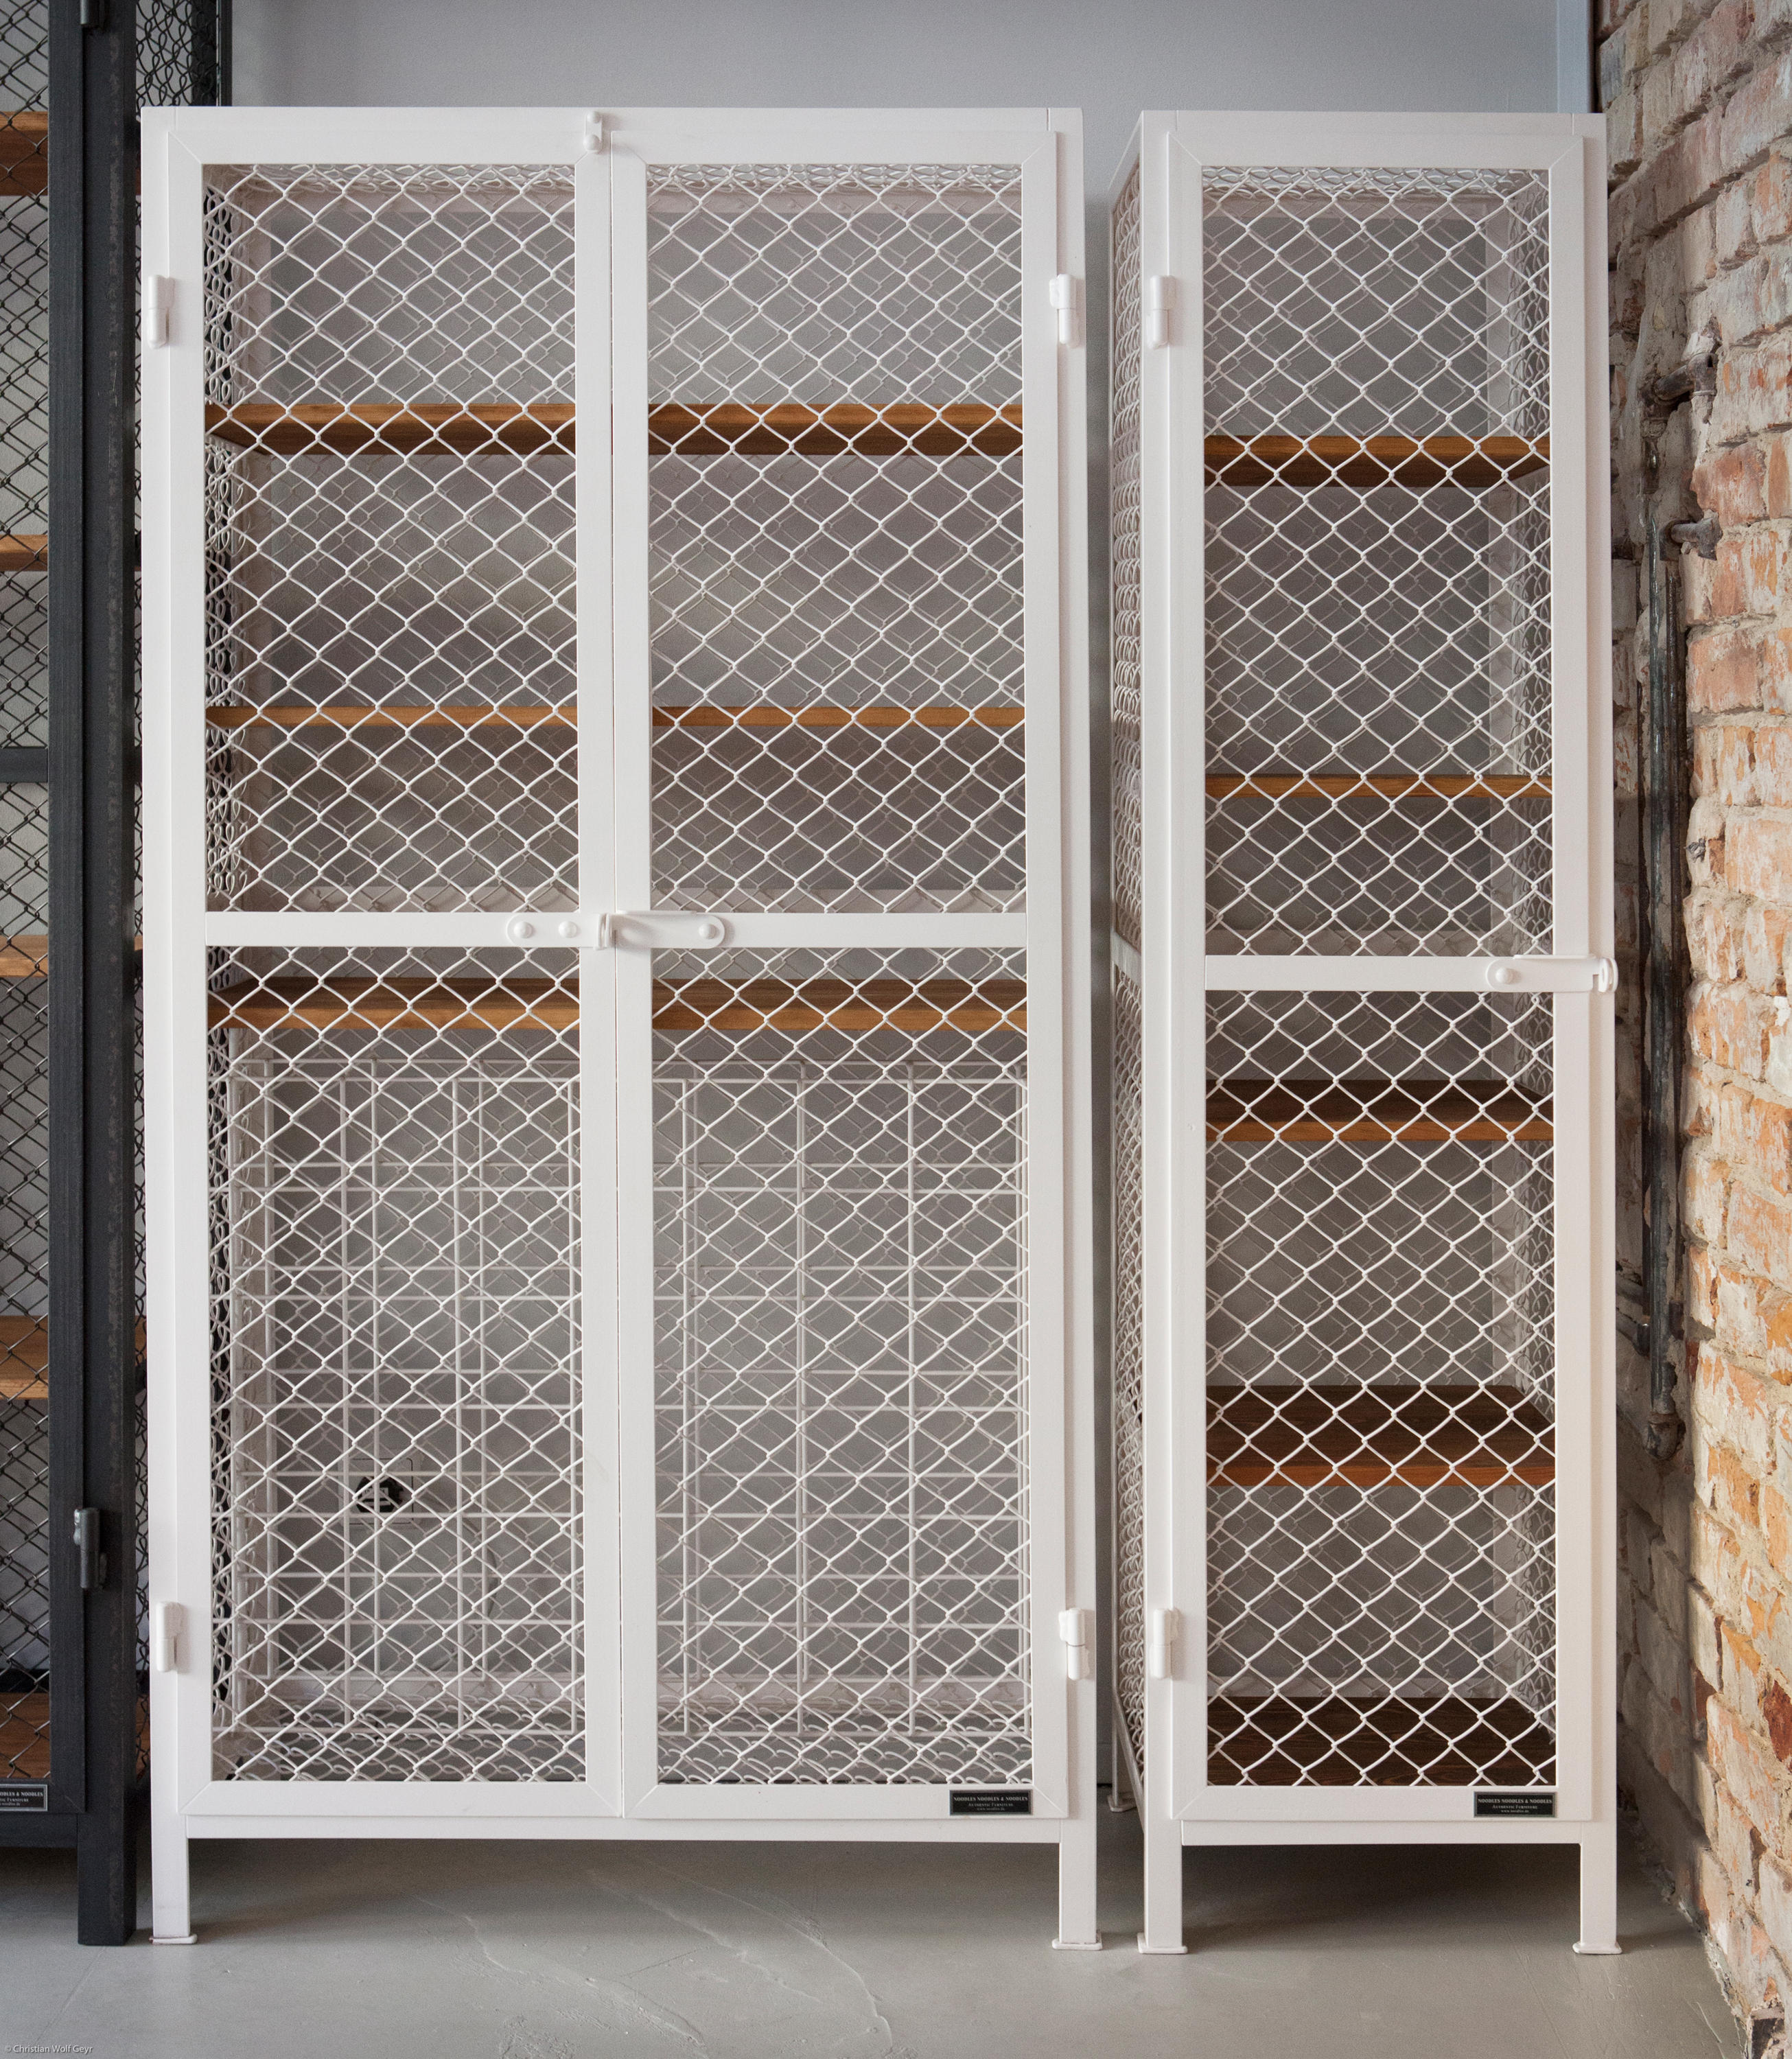 Wire Mesh For Cabinets Wine Cabinet 1 Wine Racks From Noodles Noodles Noodles Corp